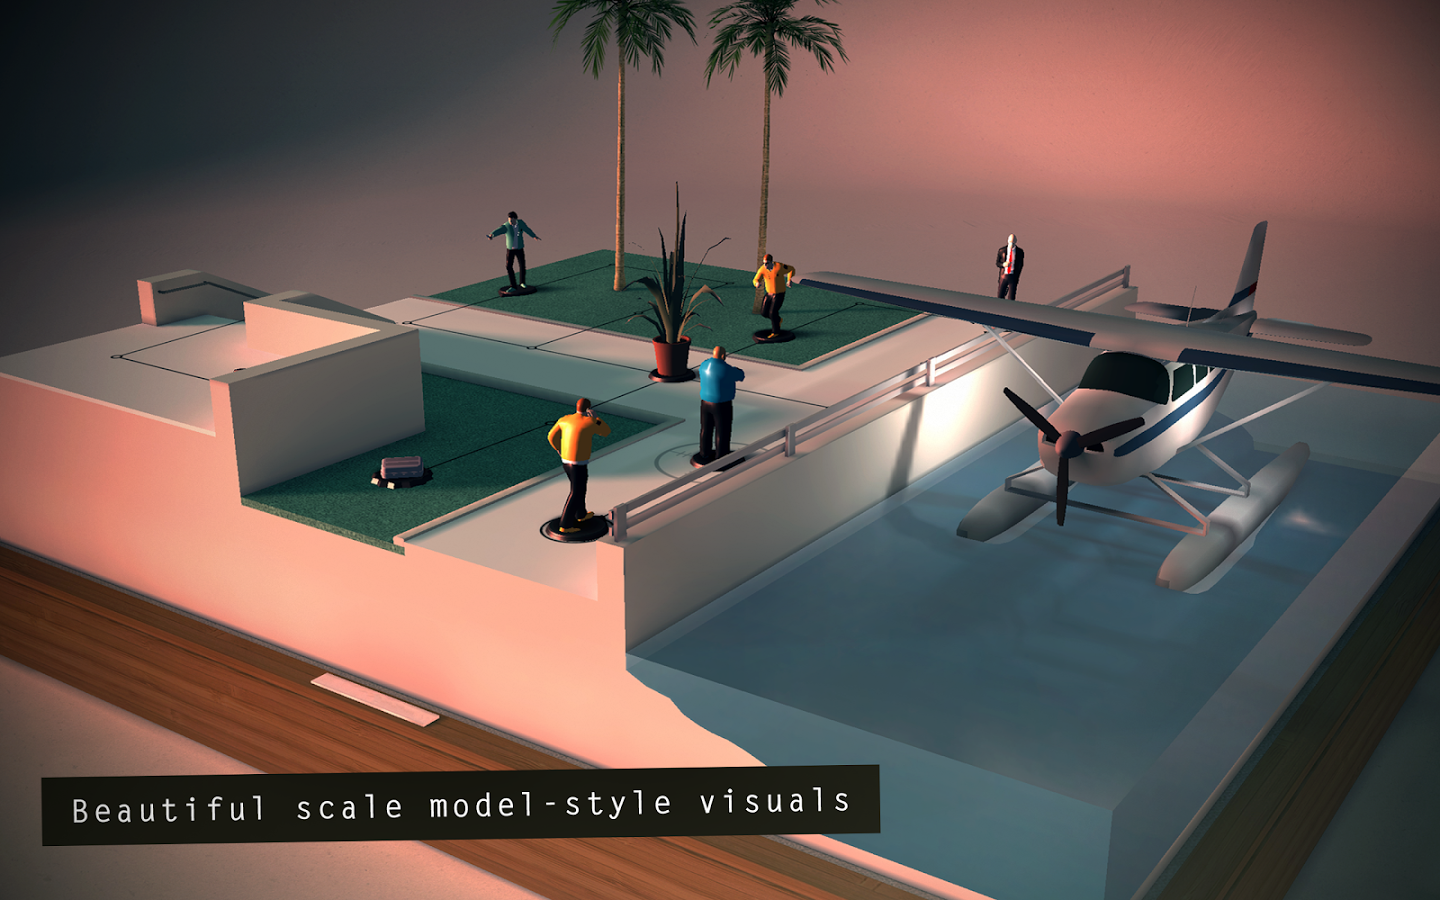 Square Enix Montreal built a level of Hitman GO in real life and its simply amazing